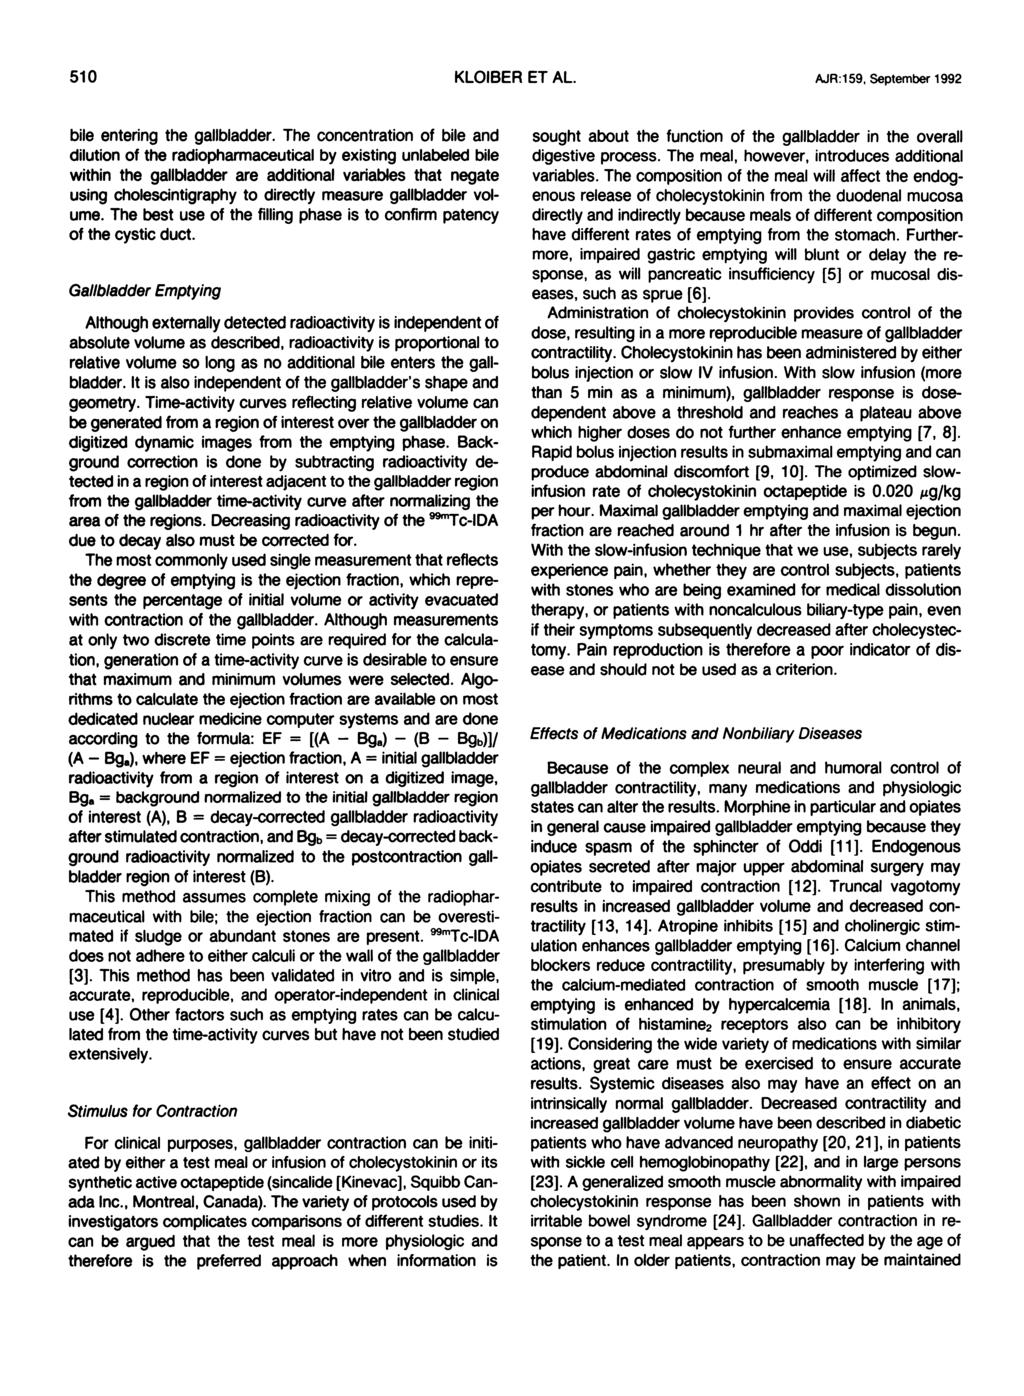 Chronic Biliary-Type Pain in the Absence of Gallstones: The Value of ...